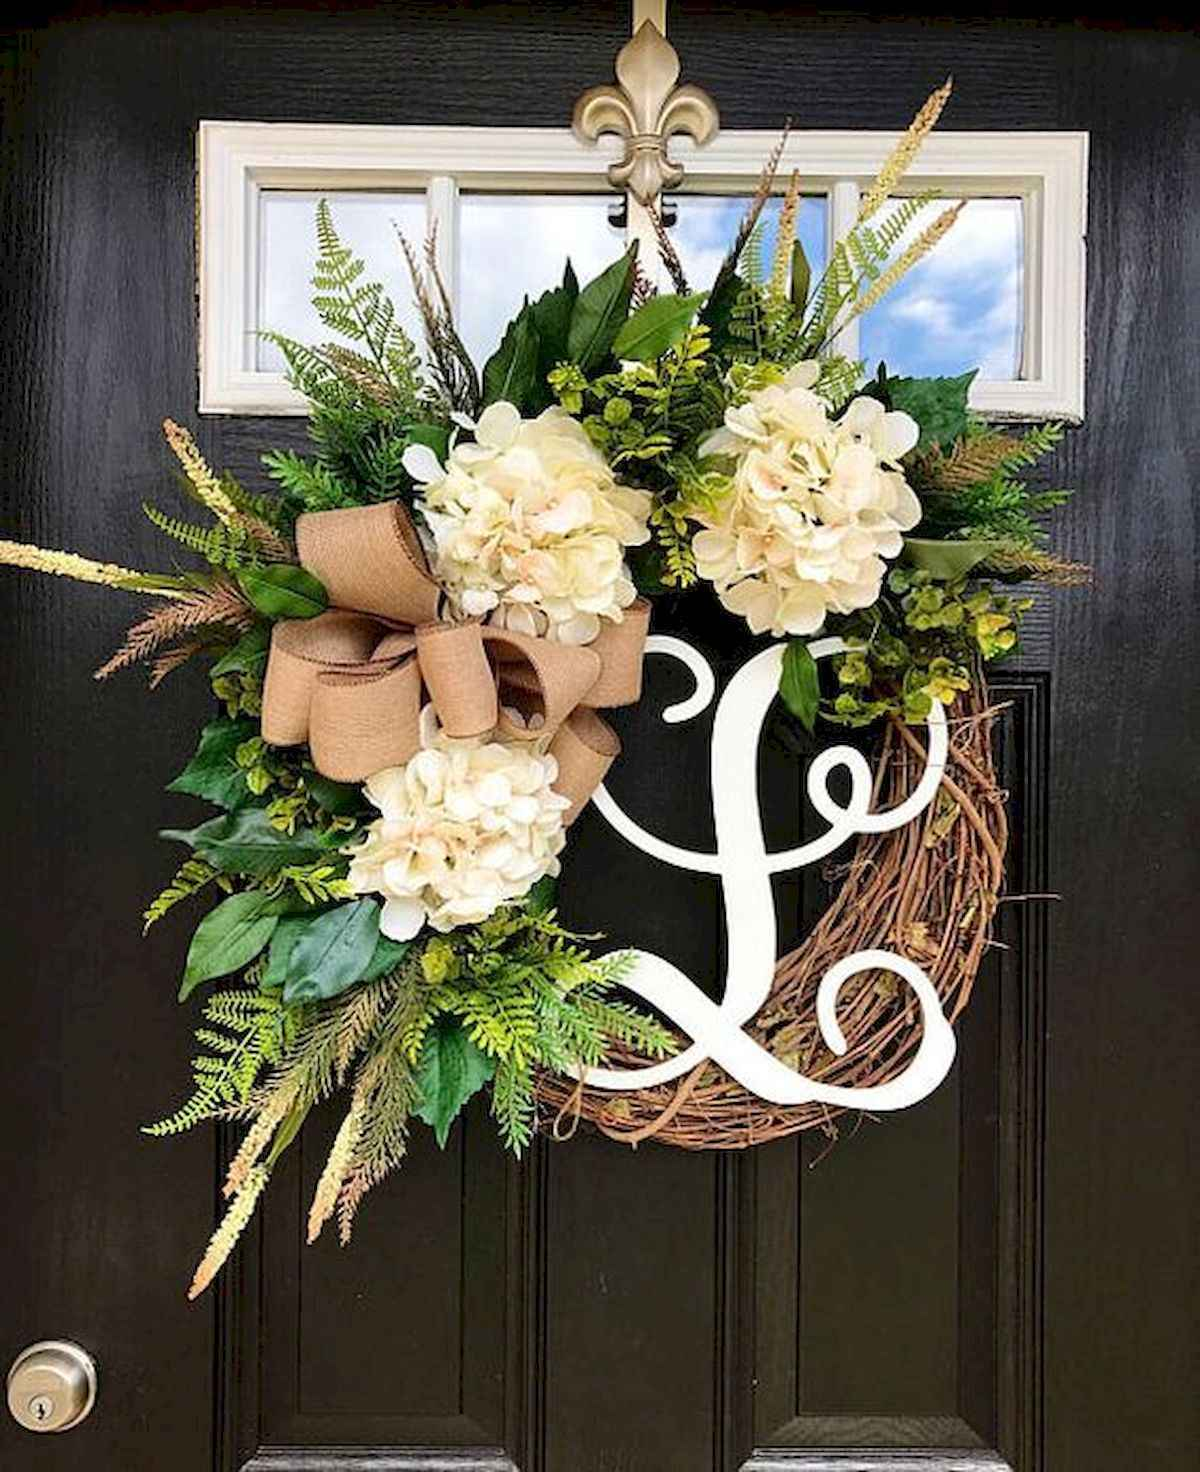 60 awesome wall art christmas ideas decorations (38)